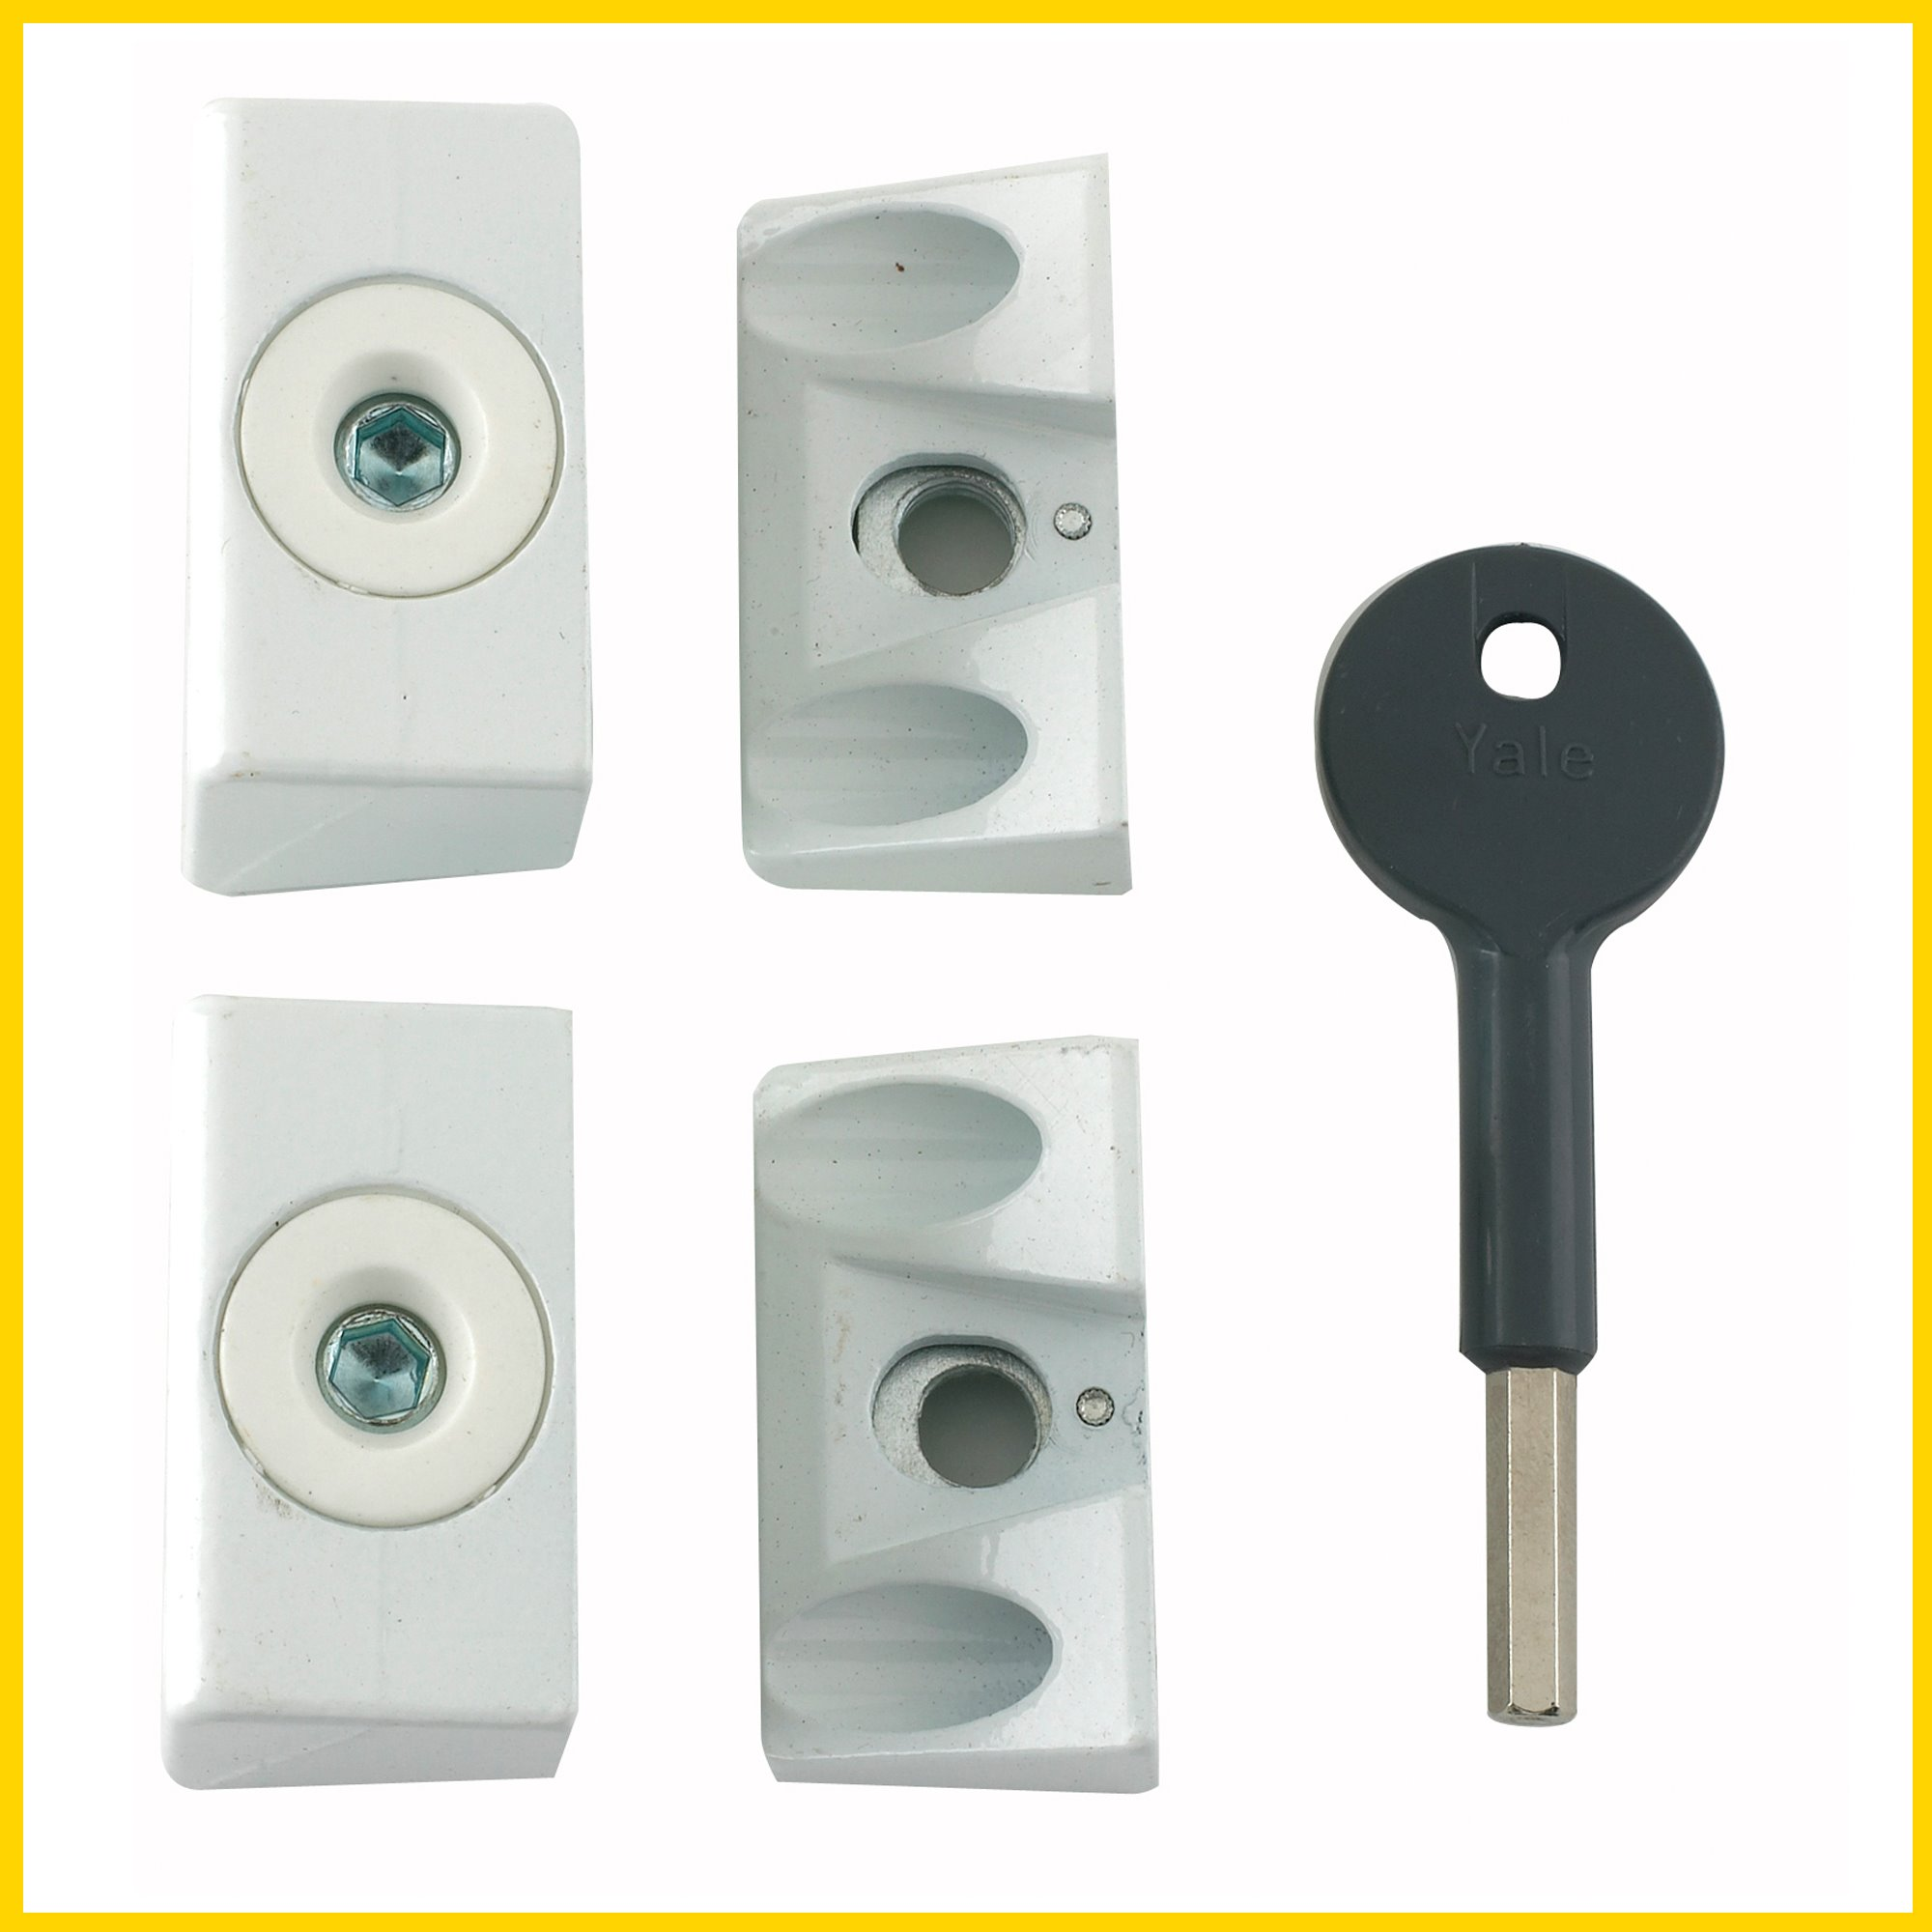 8K108 - Sash Window Lock